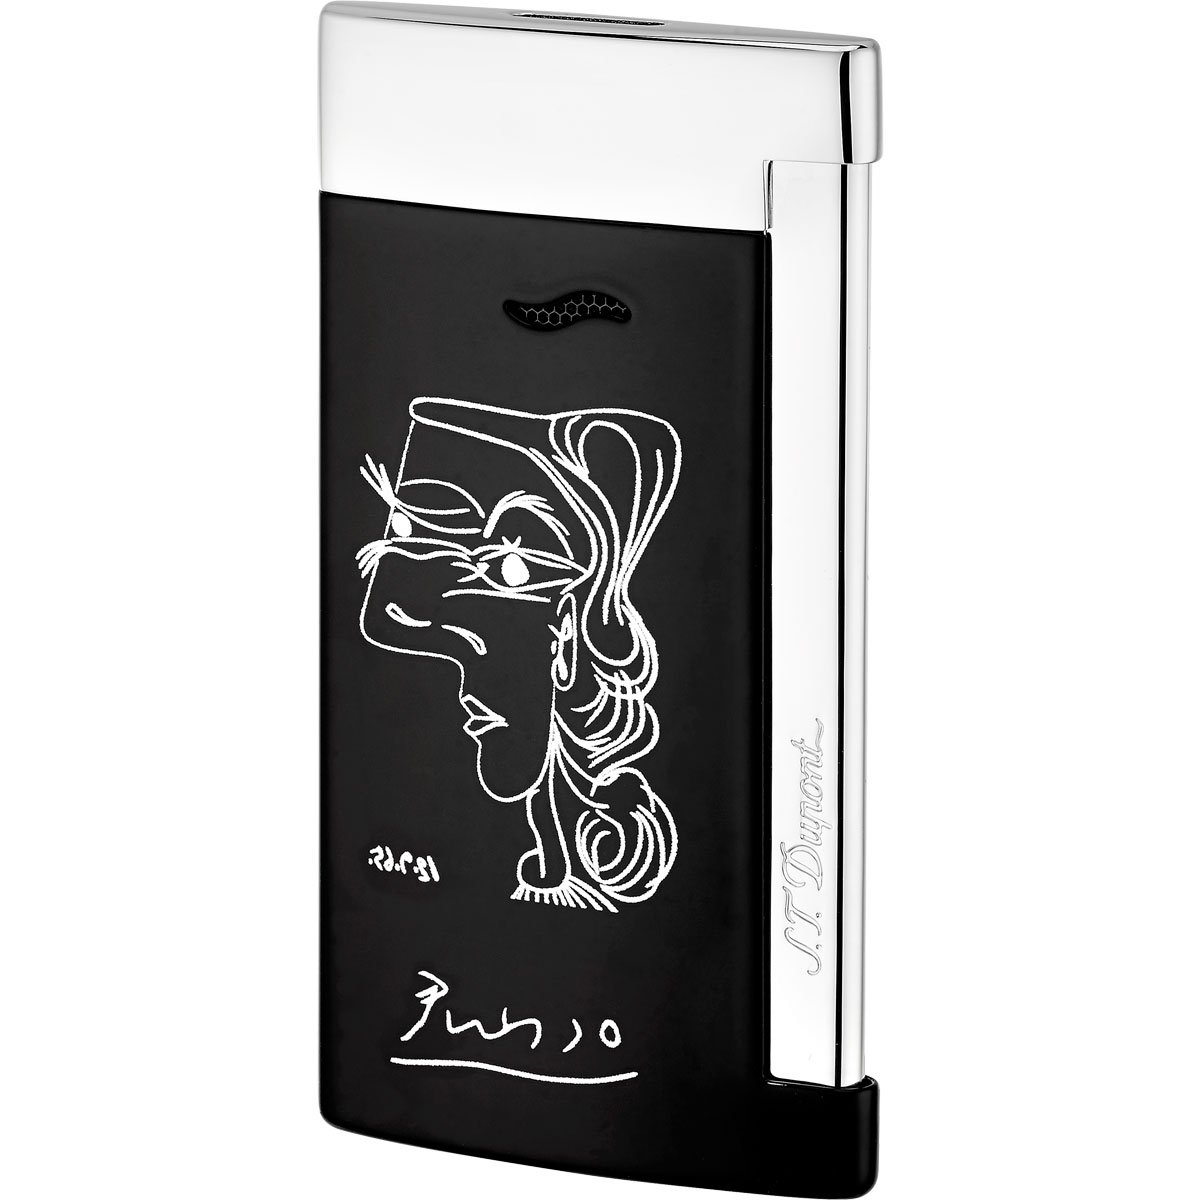 ST Dupont Picasso Slim 7 Lighter - Profil de Femme - Limited Edition